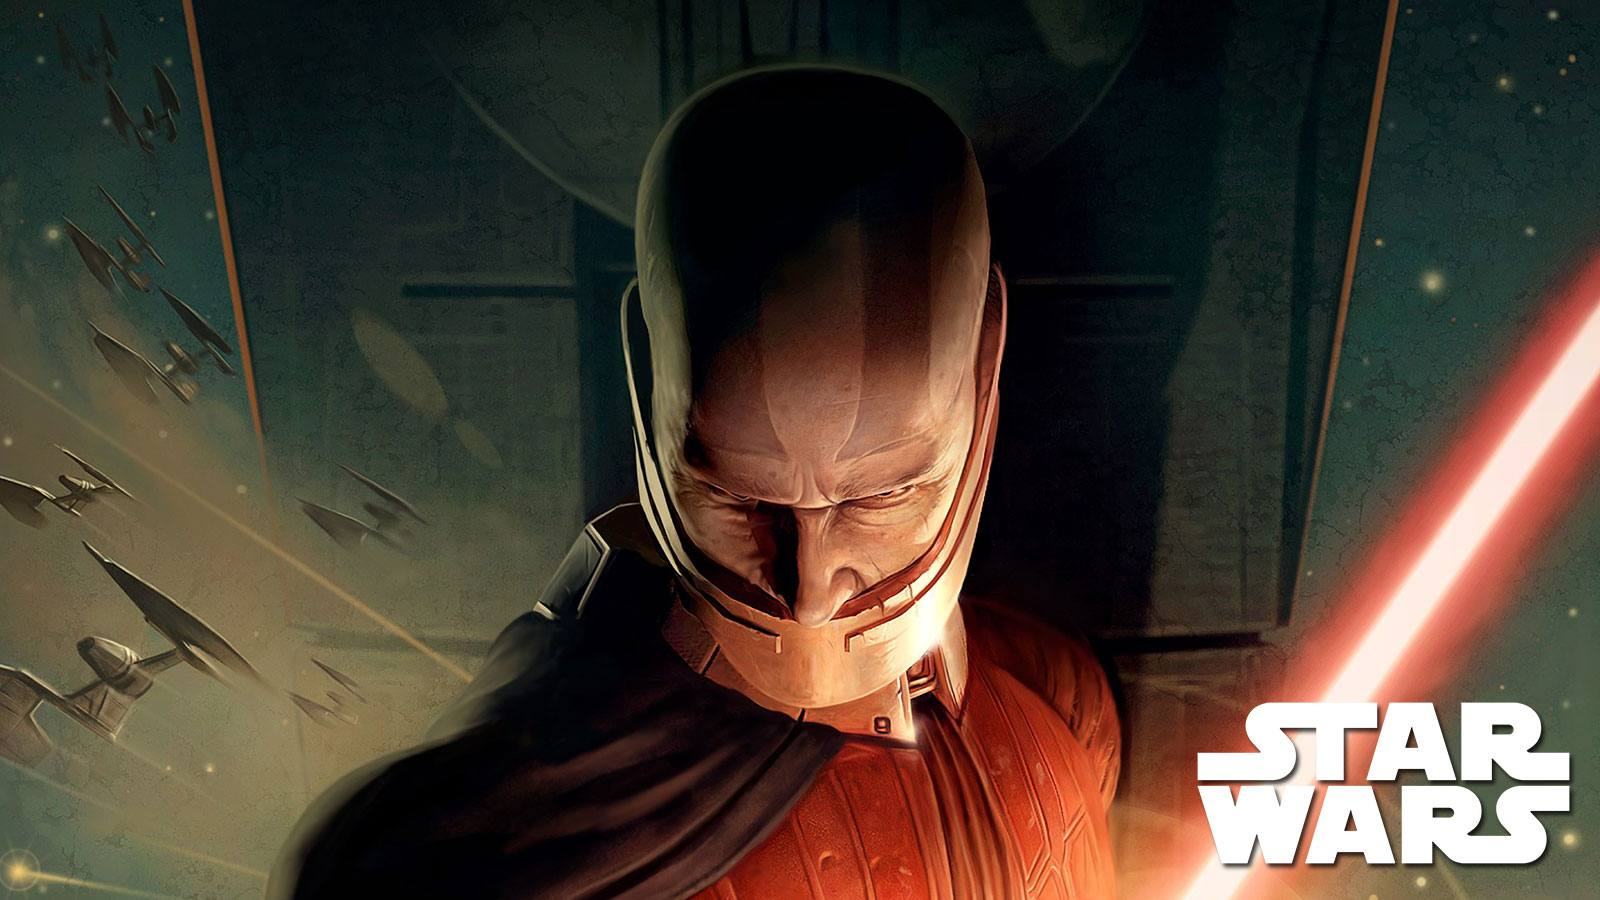 Le jeu Star Wars Knights of the old Republic